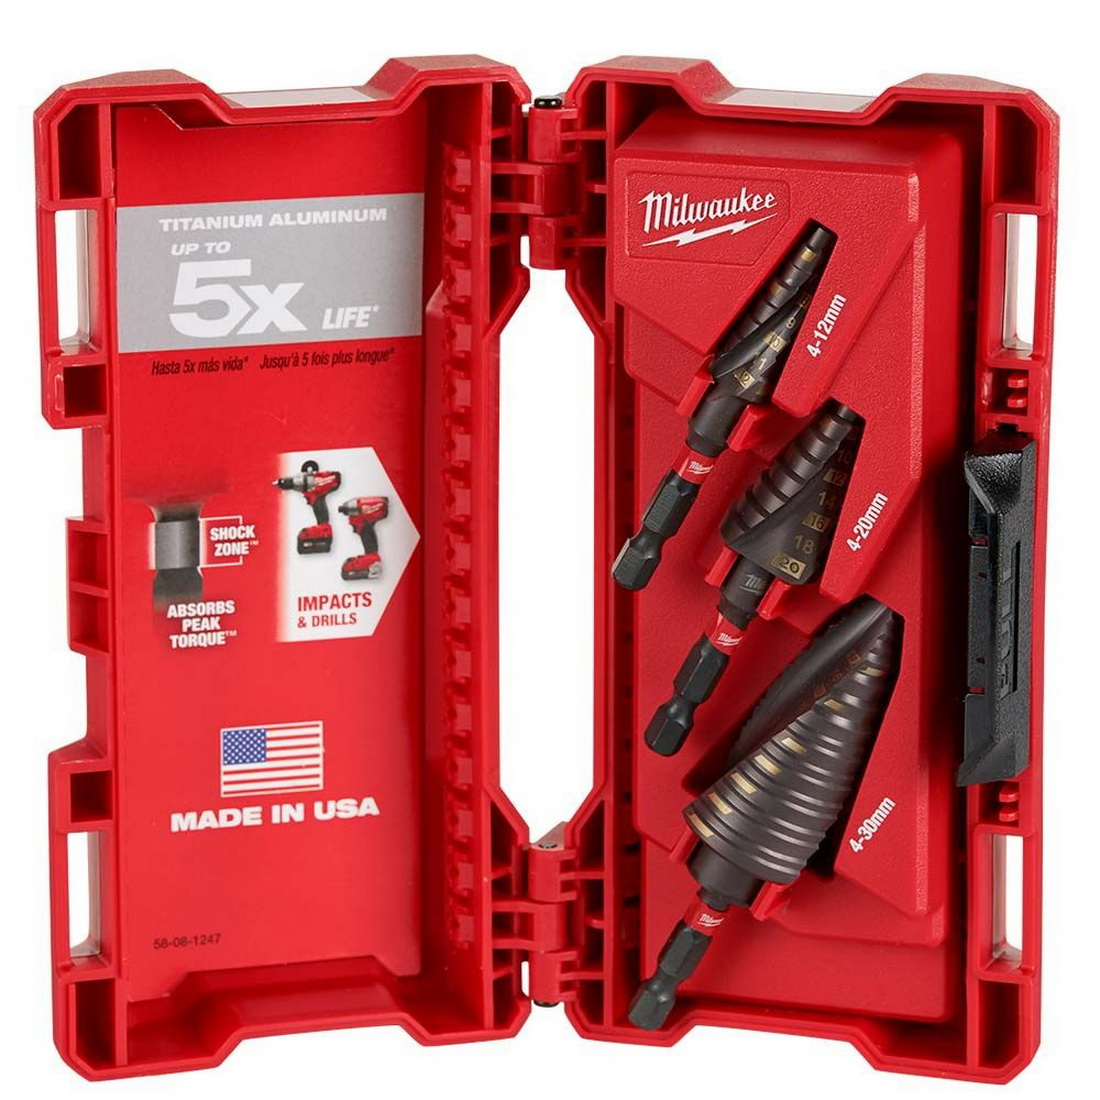 SHOCKWAVE 3 Piece Step Drill Bit Set 48899266